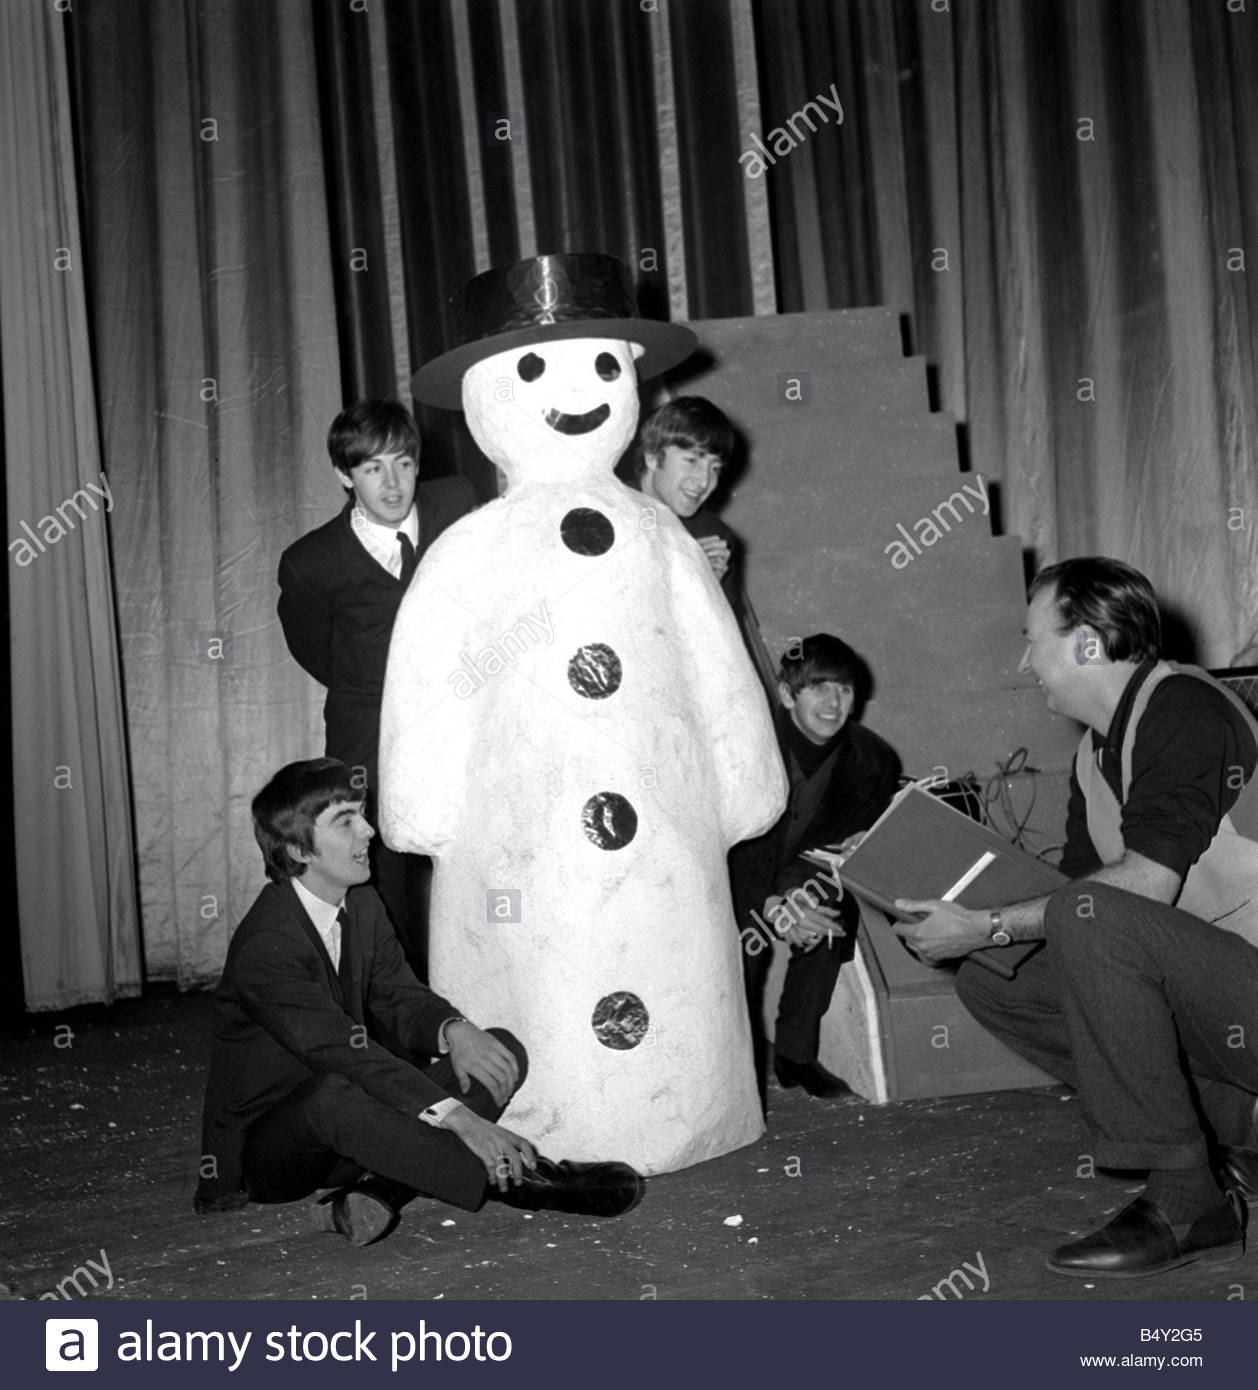 Pop Group The Beatles December 1963 The Beatles meet a snowman at the Finsbury Park Astoria where they are rehearsing - Stock Image